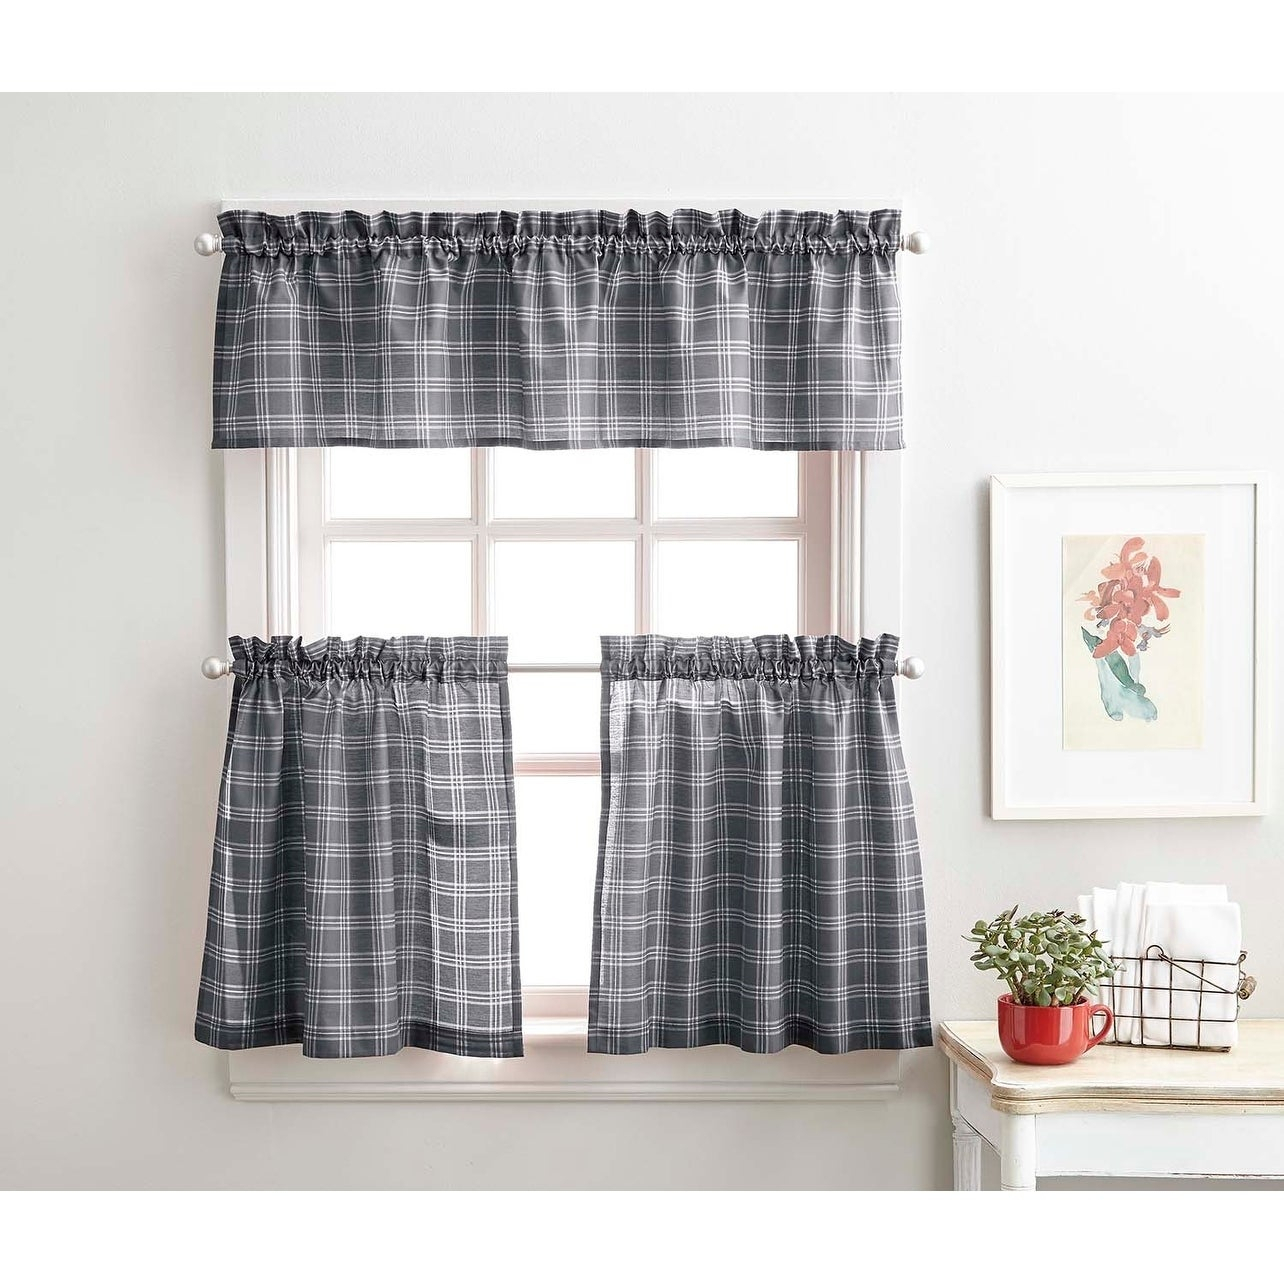 Details About Lodge Plaid 3 Piece Kitchen Curtain Tier And Valance Set – Inside Scroll Leaf 3 Piece Curtain Tier And Valance Sets (View 7 of 20)